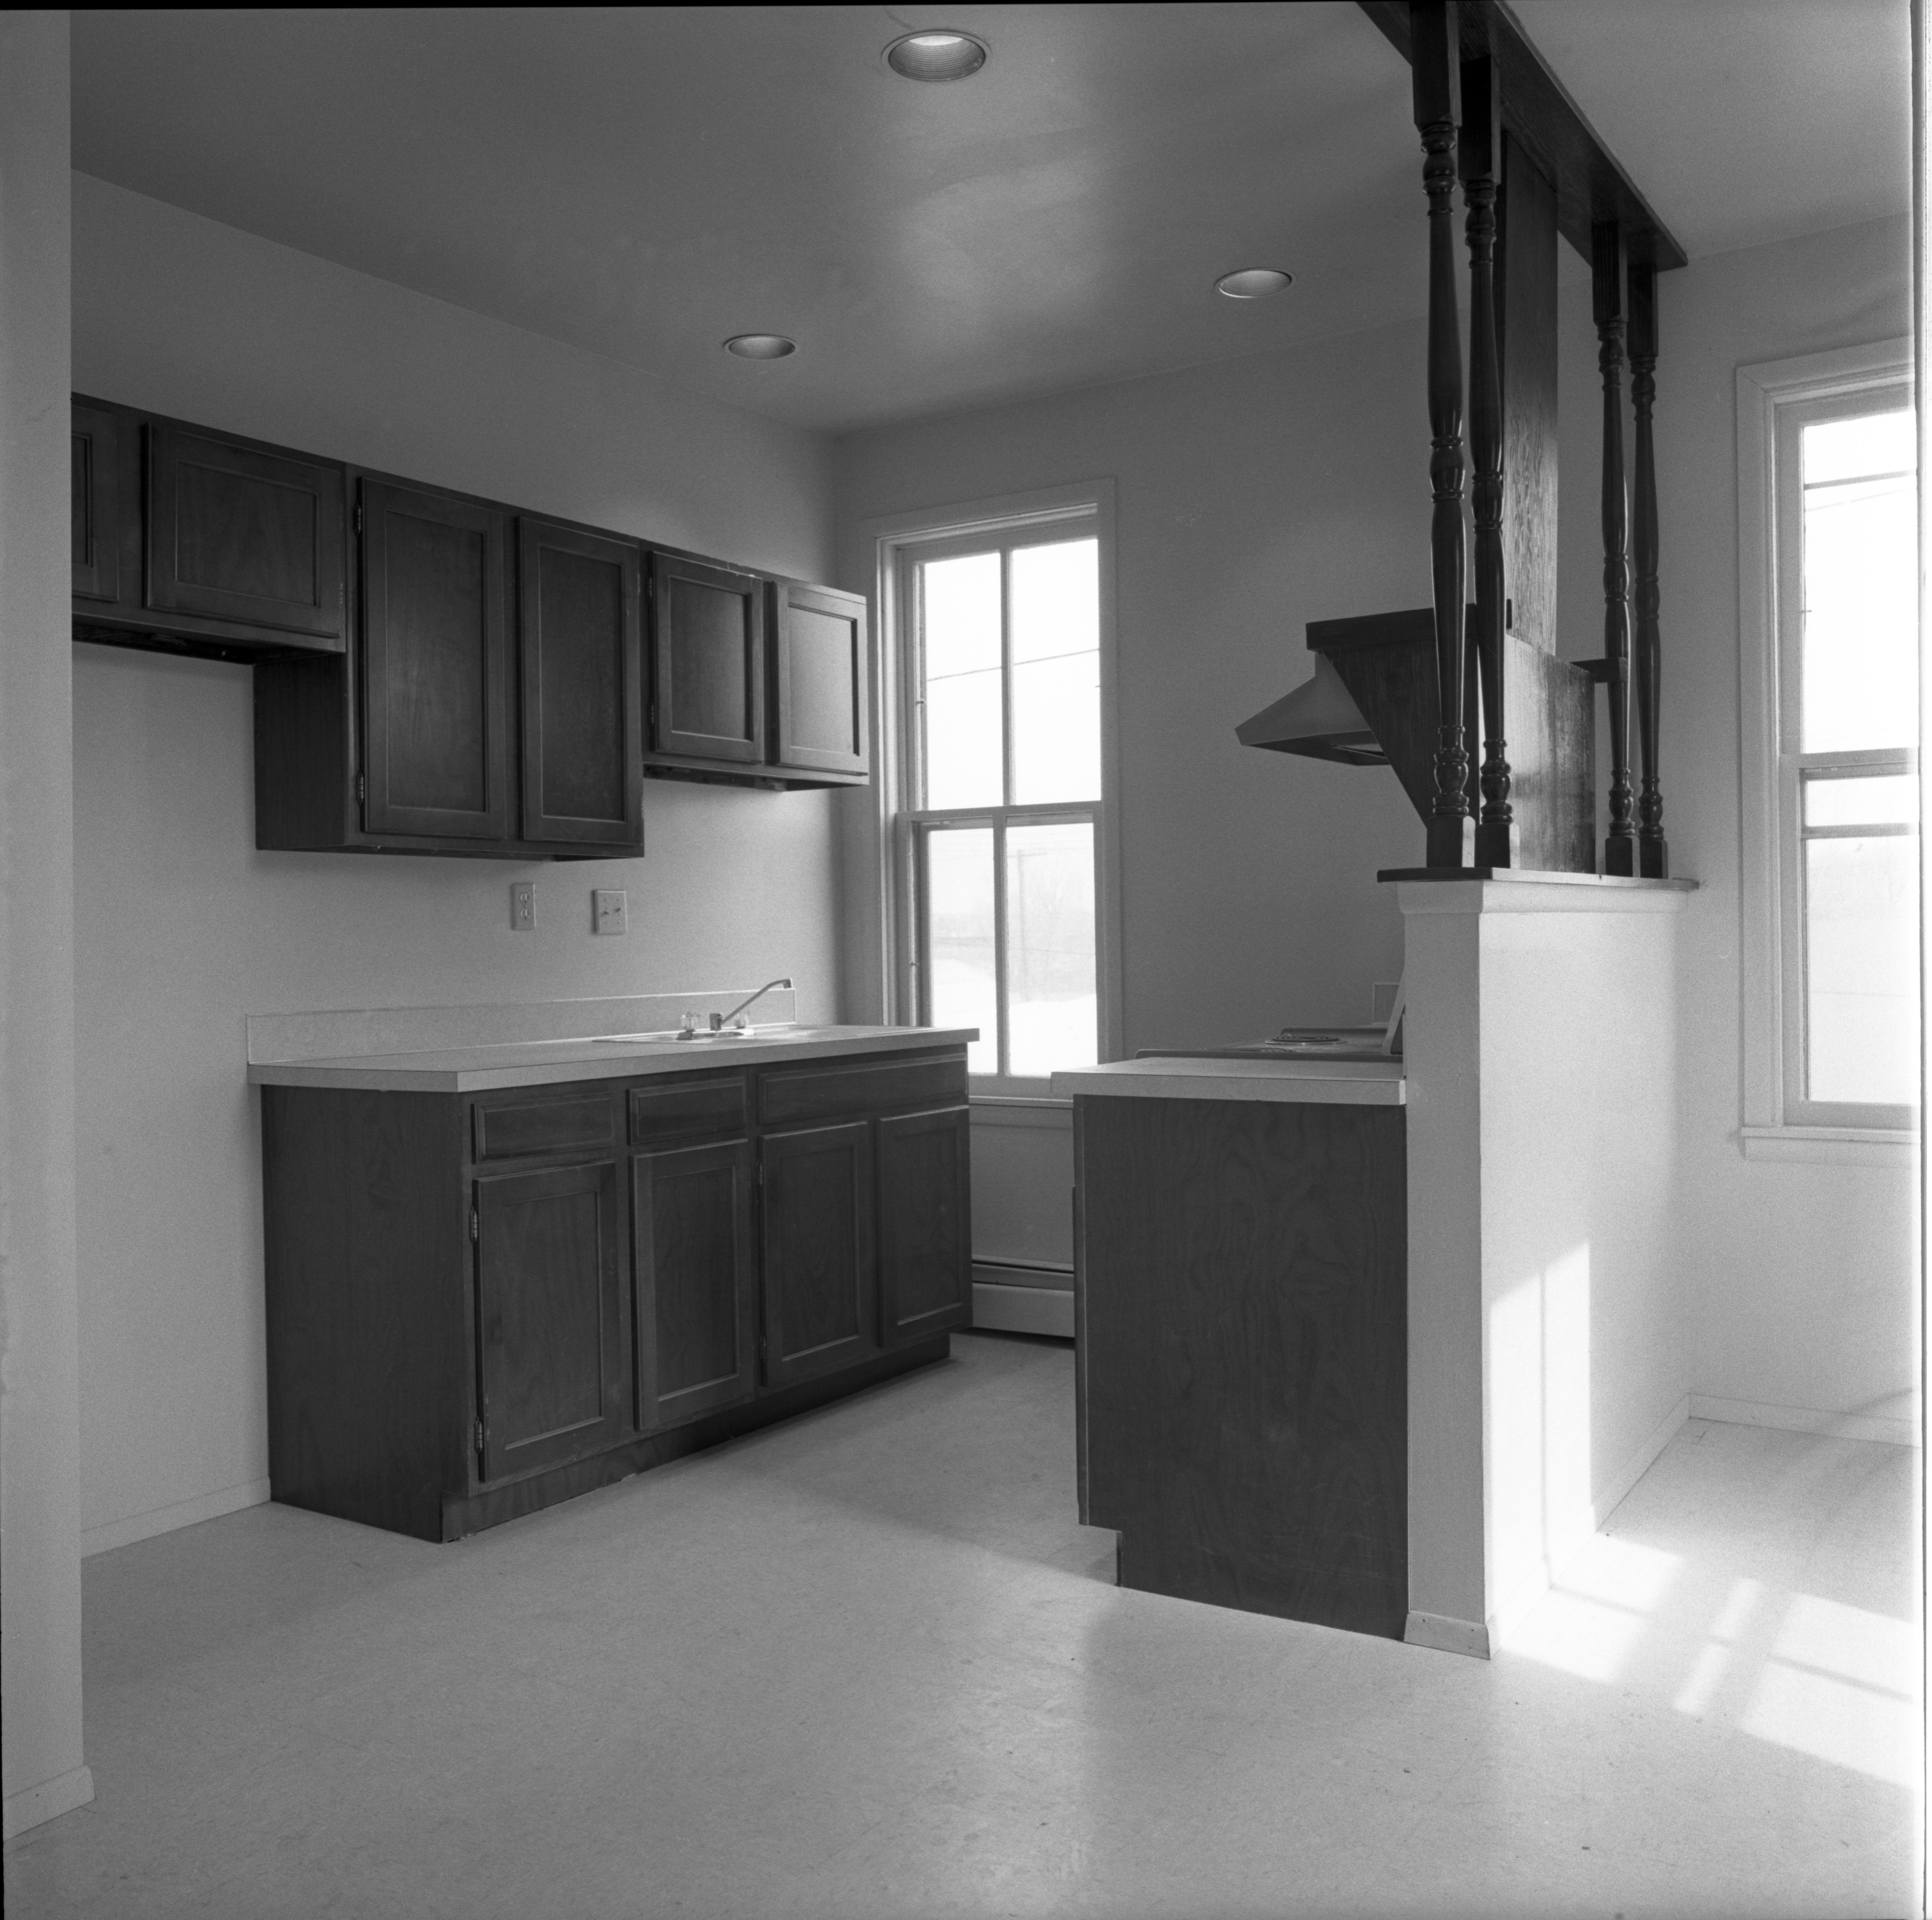 Kitchen In New Apartments At 724 N Fifth Ave, March 21, 1975 image